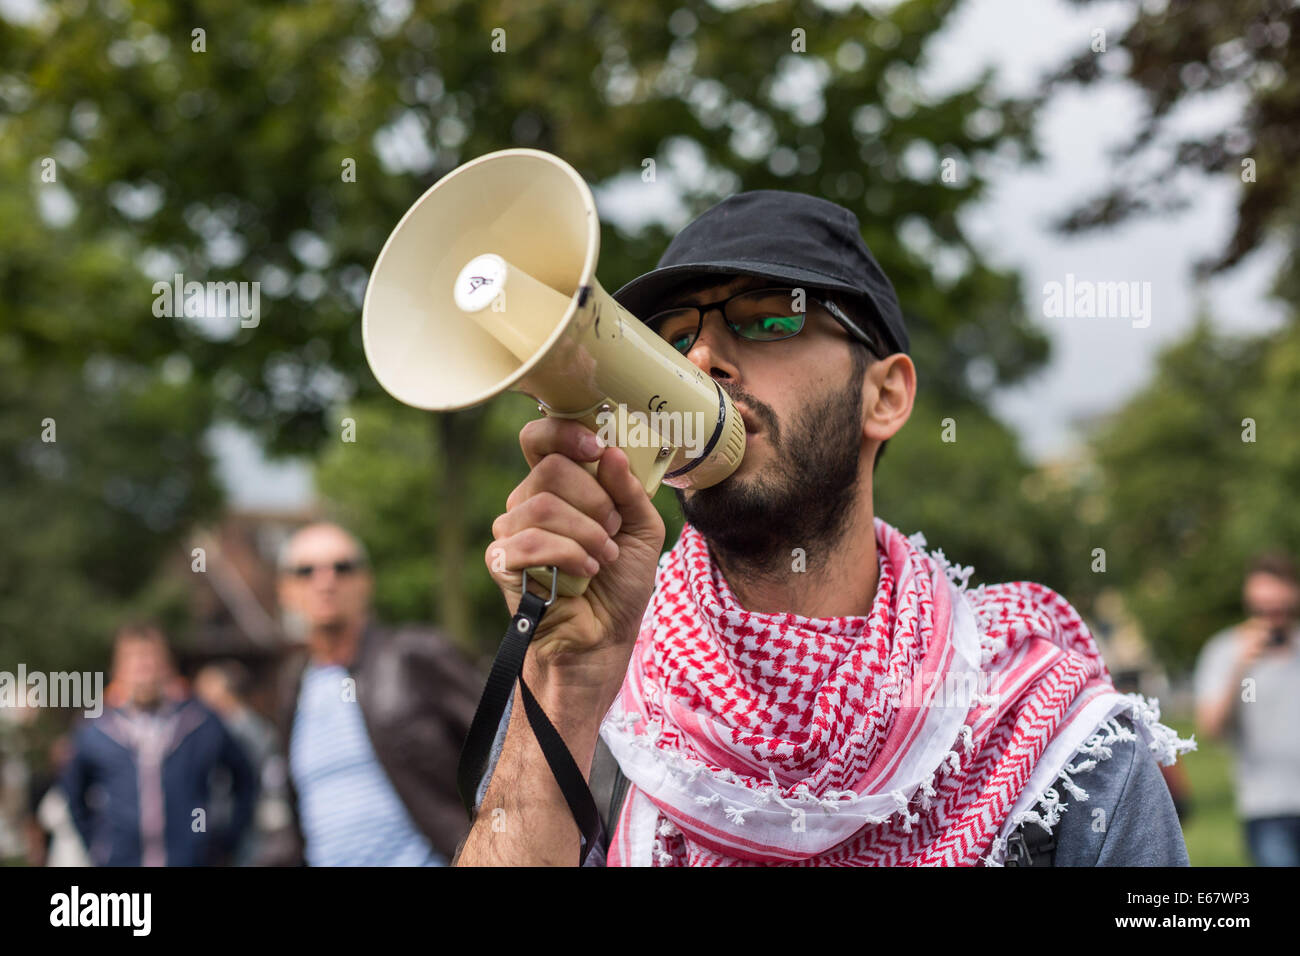 Brighton, UK. 17th Aug, 2014. Pro-Palestinian and Pro-Israelis clash in Brighton 2014 Credit:  Guy Corbishley/Alamy - Stock Image